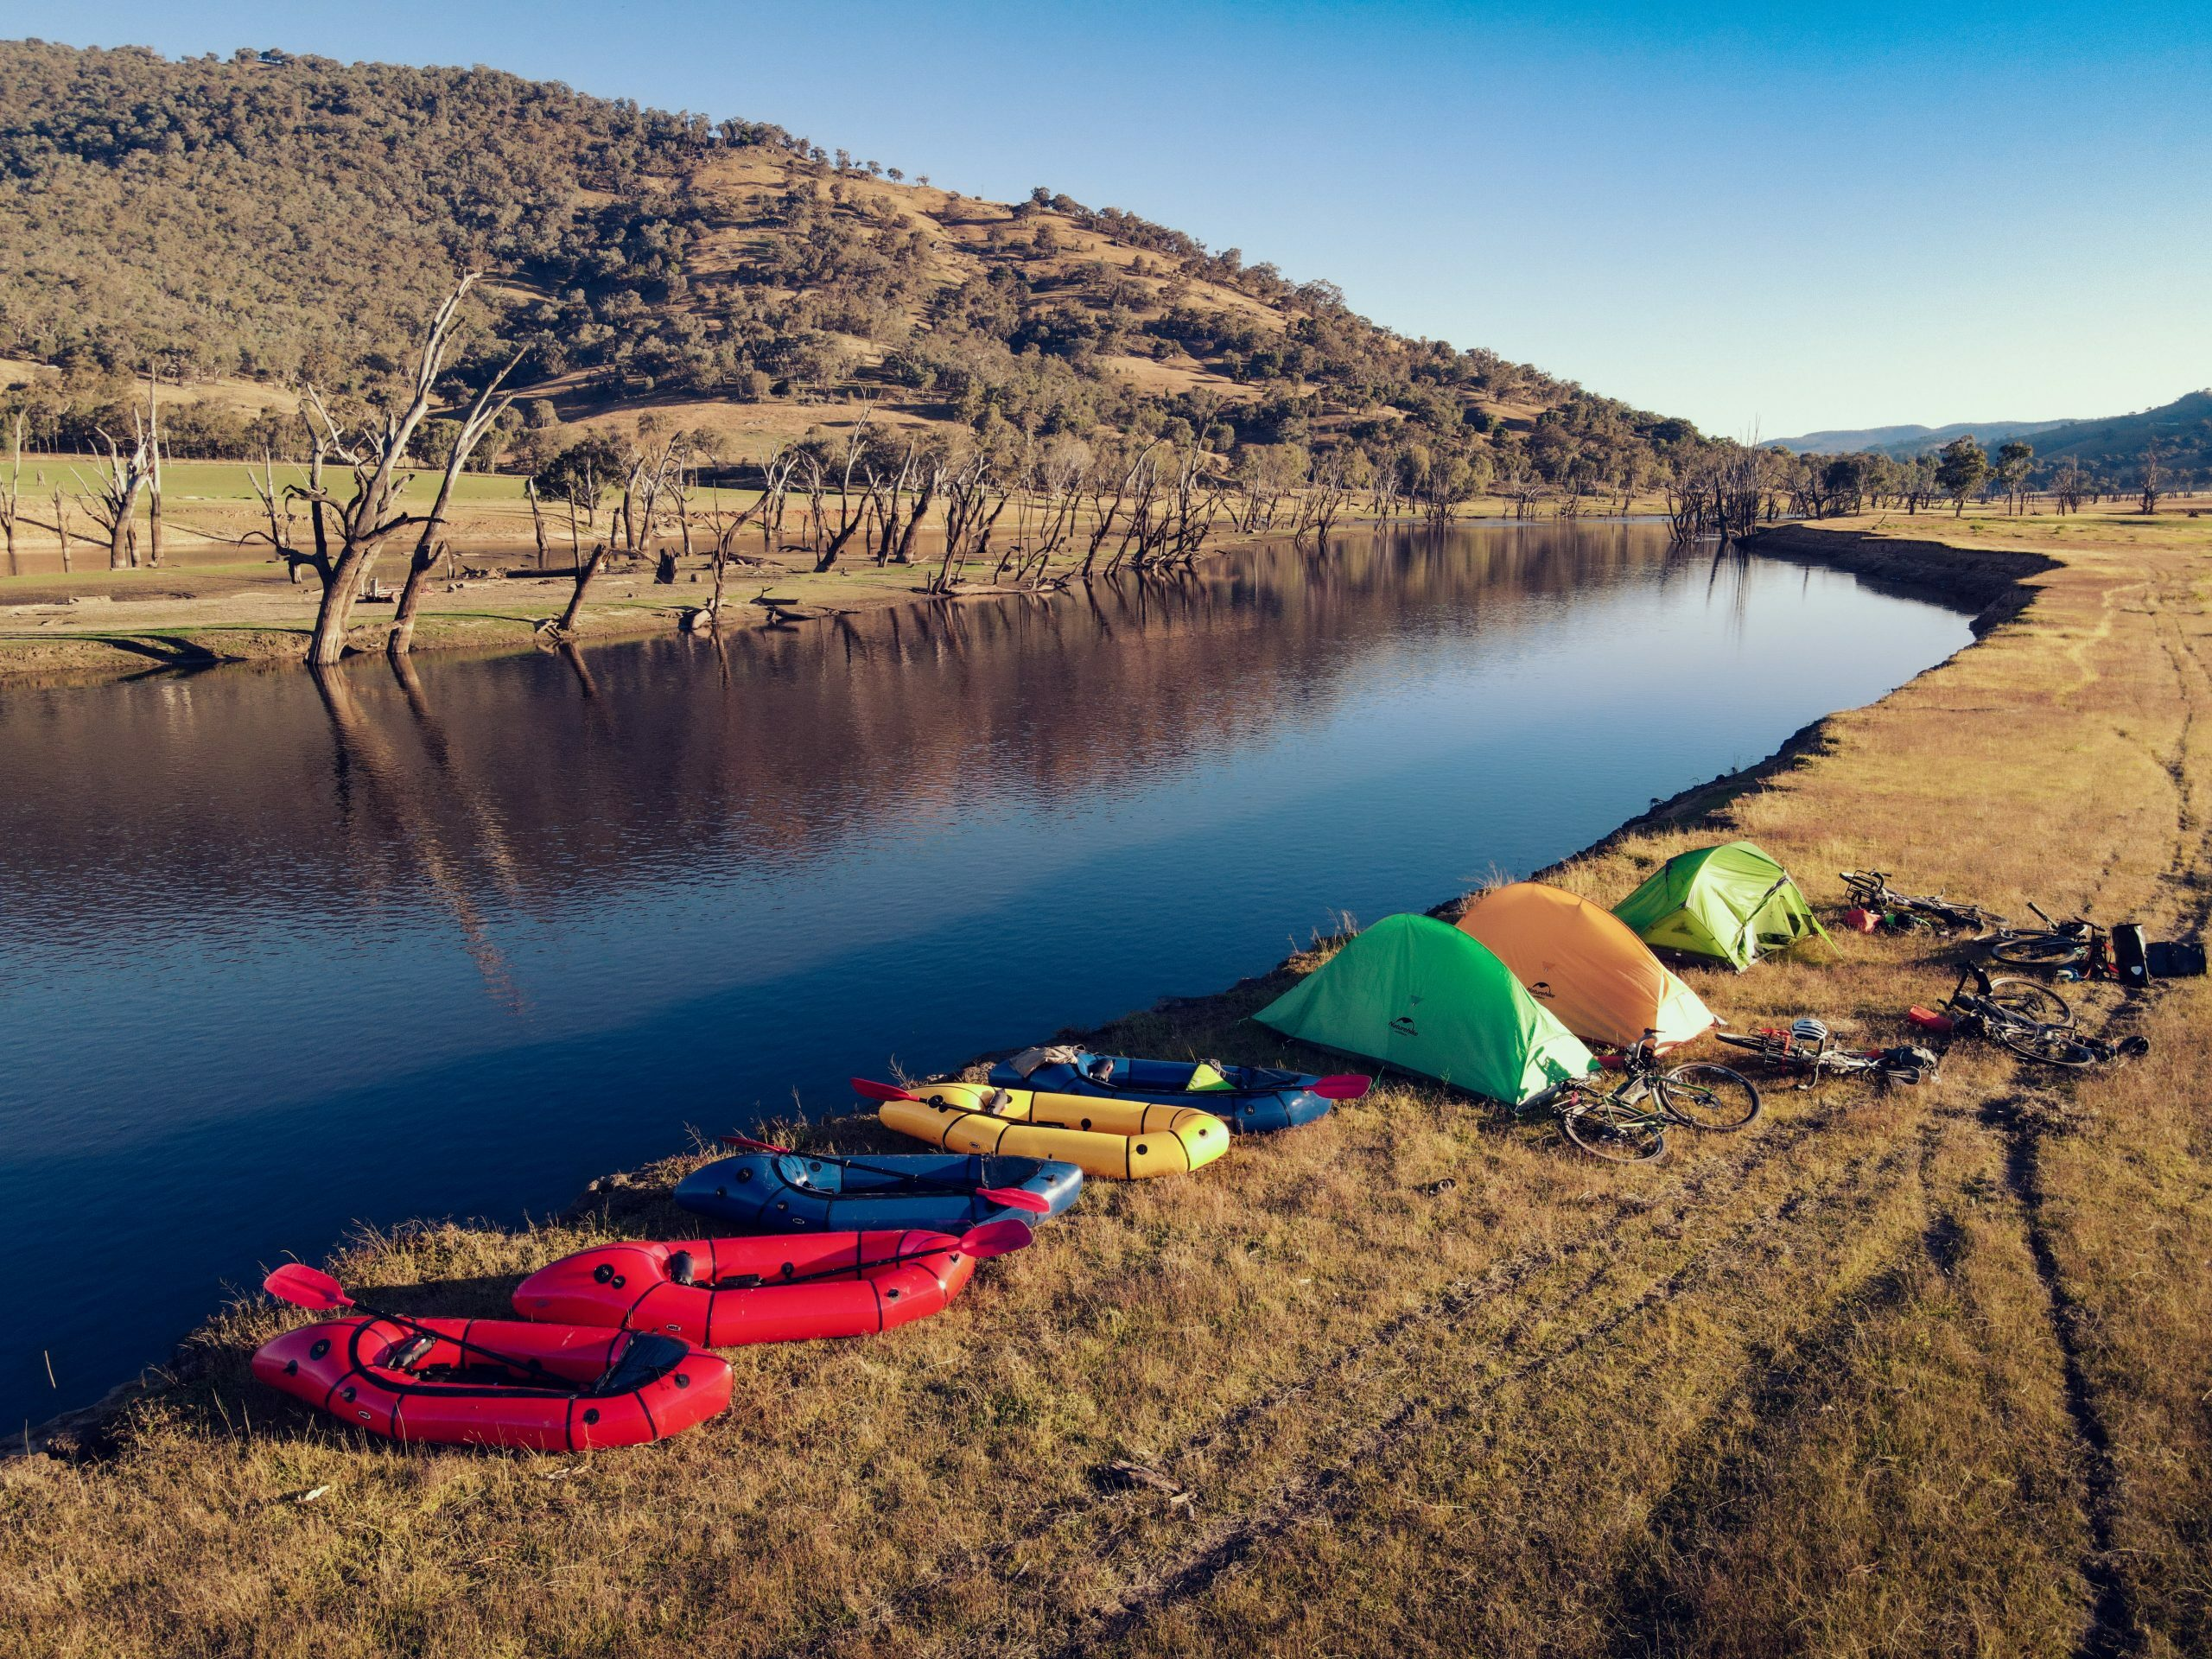 Packrafts and campsite on the bank of the Murray River